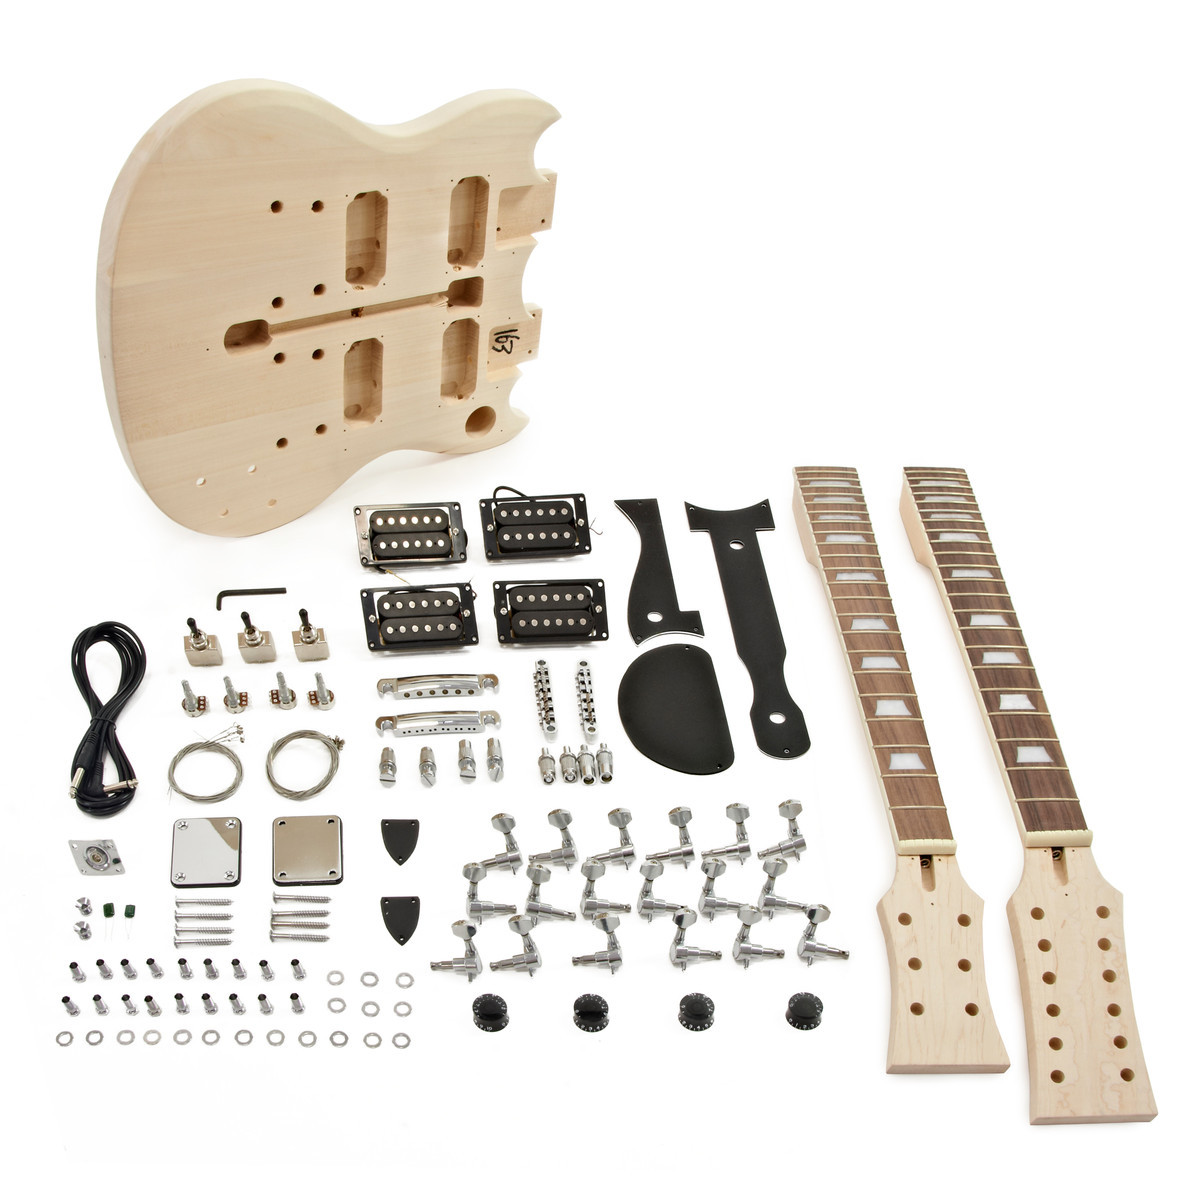 DIY Double Neck Guitar Kit  Brooklyn Double Neck Guitar DIY Kit Nearly New at